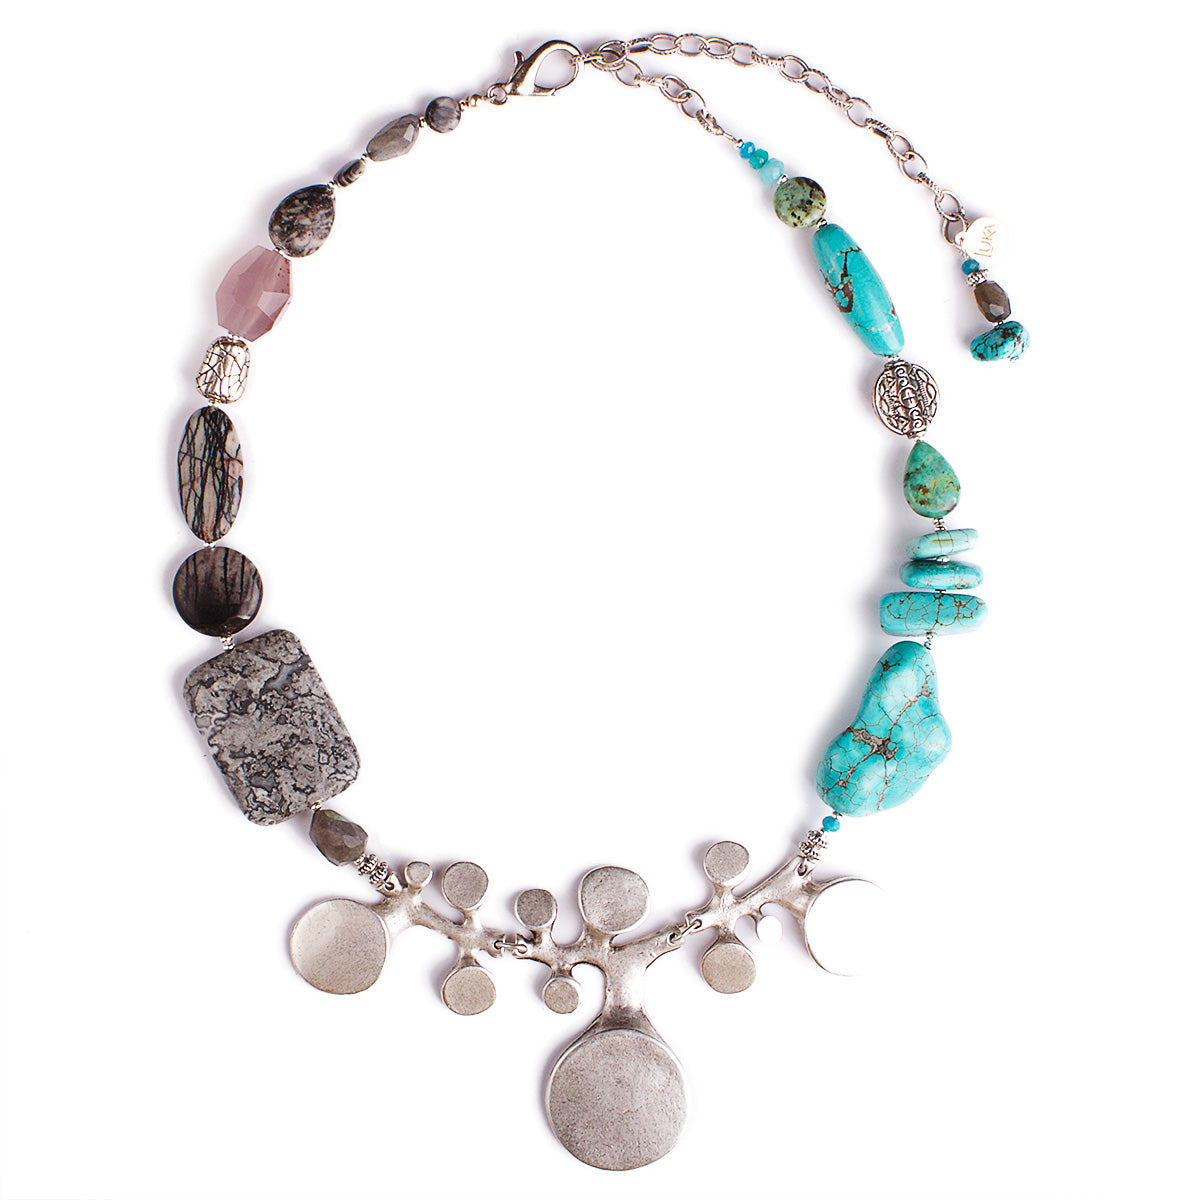 N°322 The Turquoise Wanderlust Statement Necklace